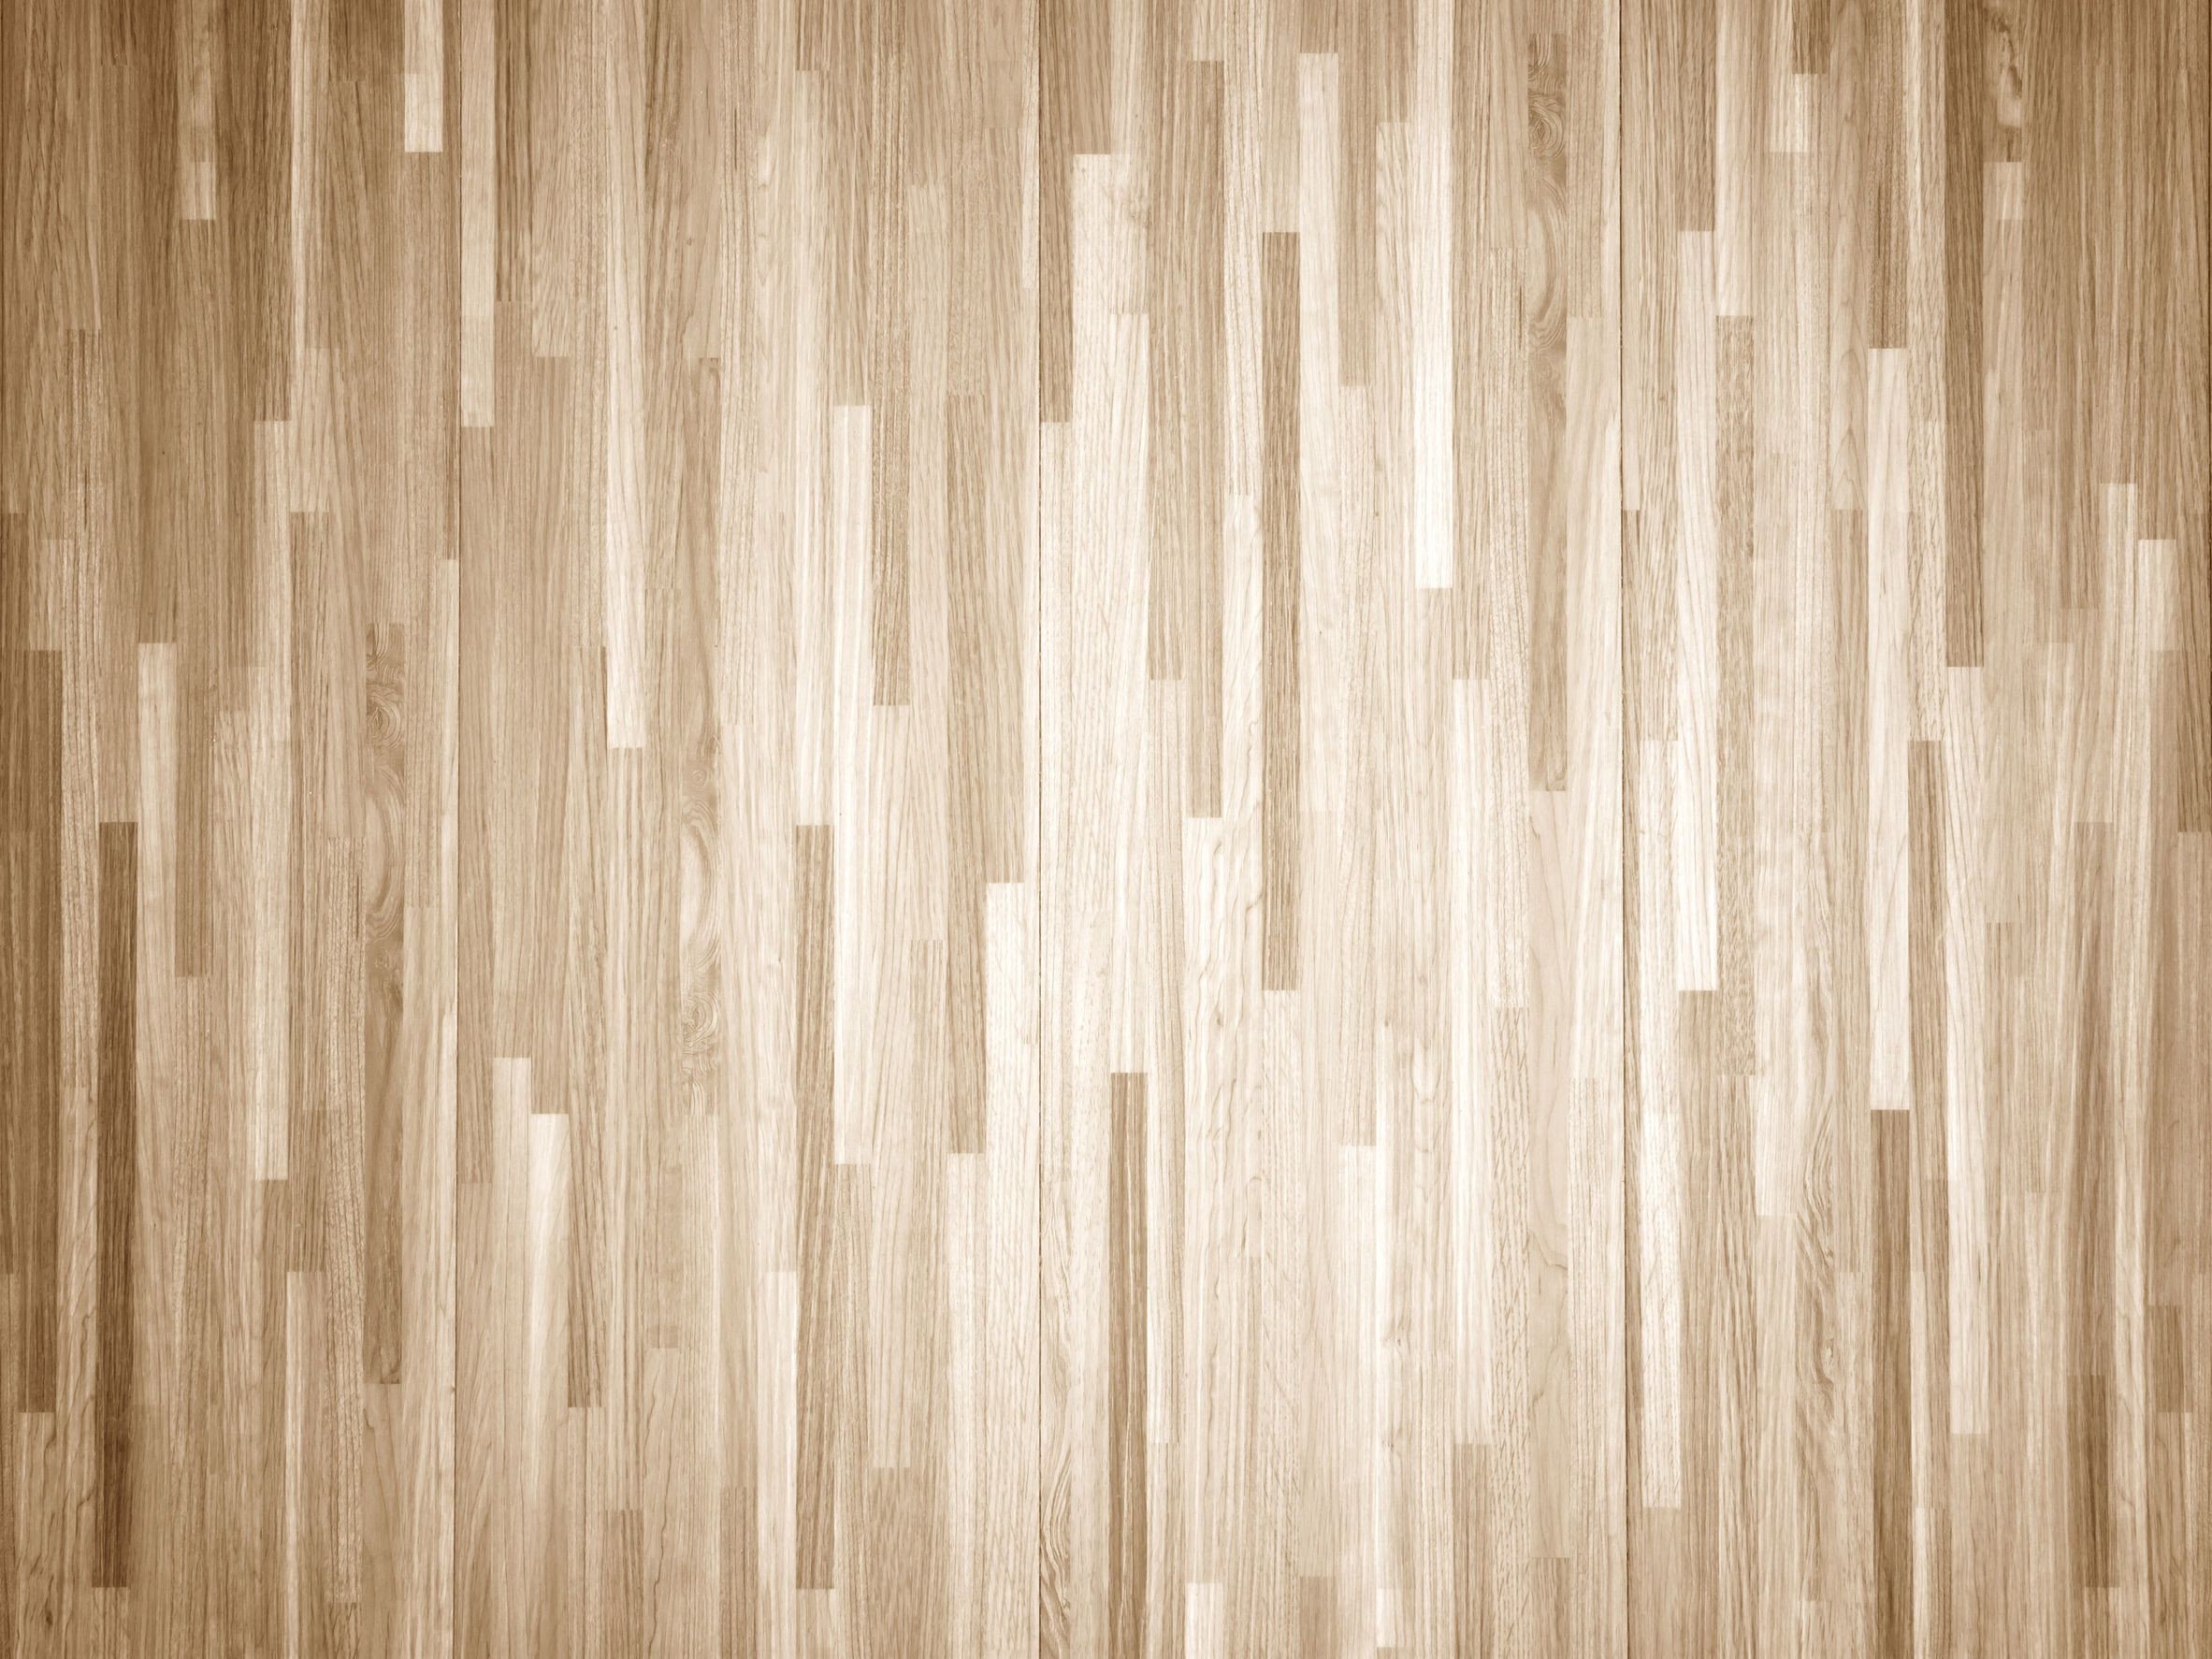 best place to buy hardwood flooring online of how to chemically strip wood floors woodfloordoctor com throughout you may find that your wood floor